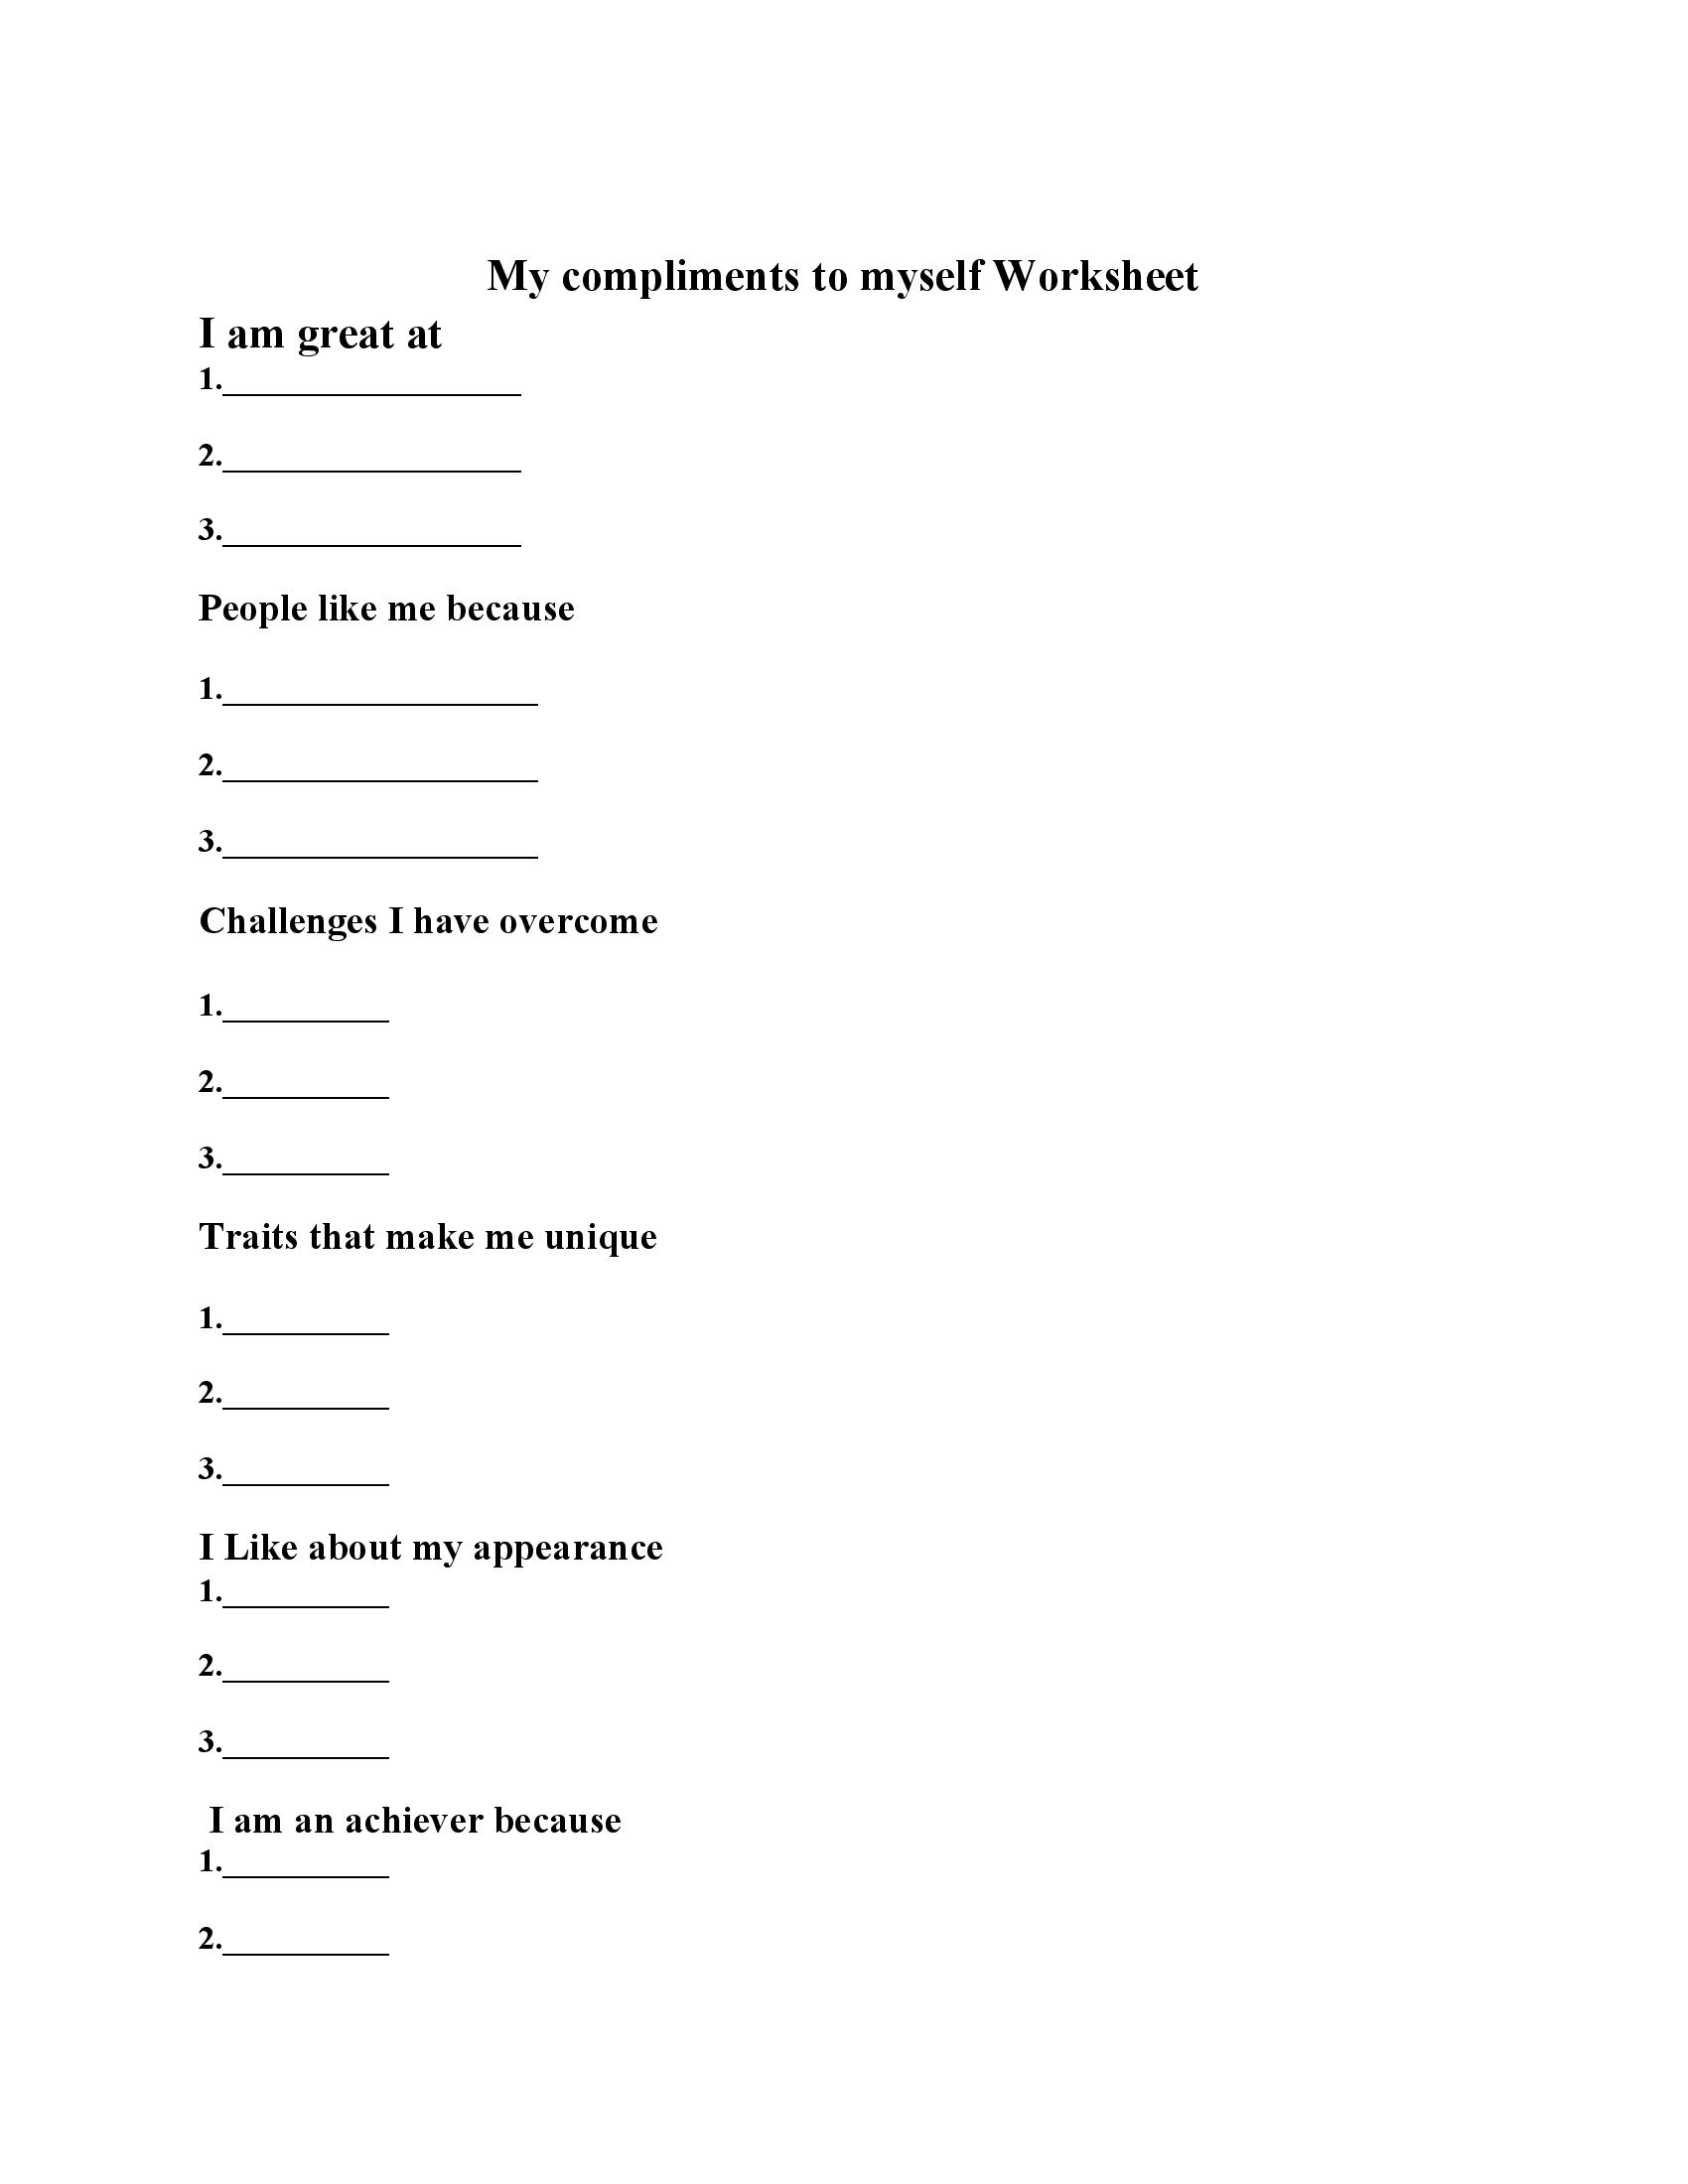 My compliments to myself Worksheet